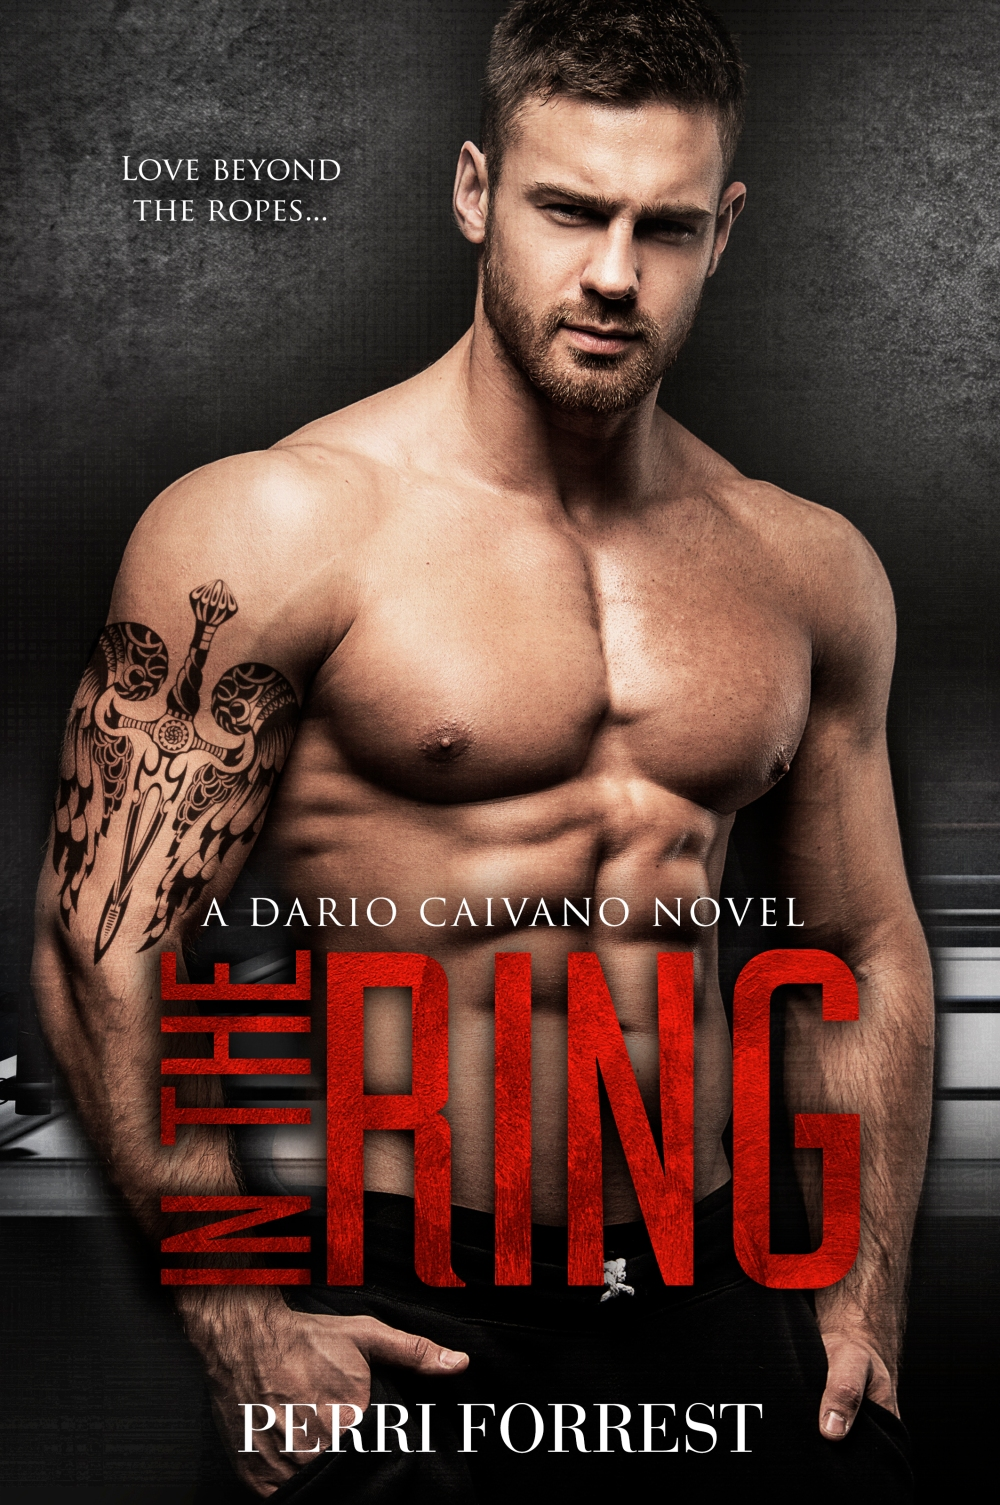 in_the_ring_by_perri_forest_2.jpg